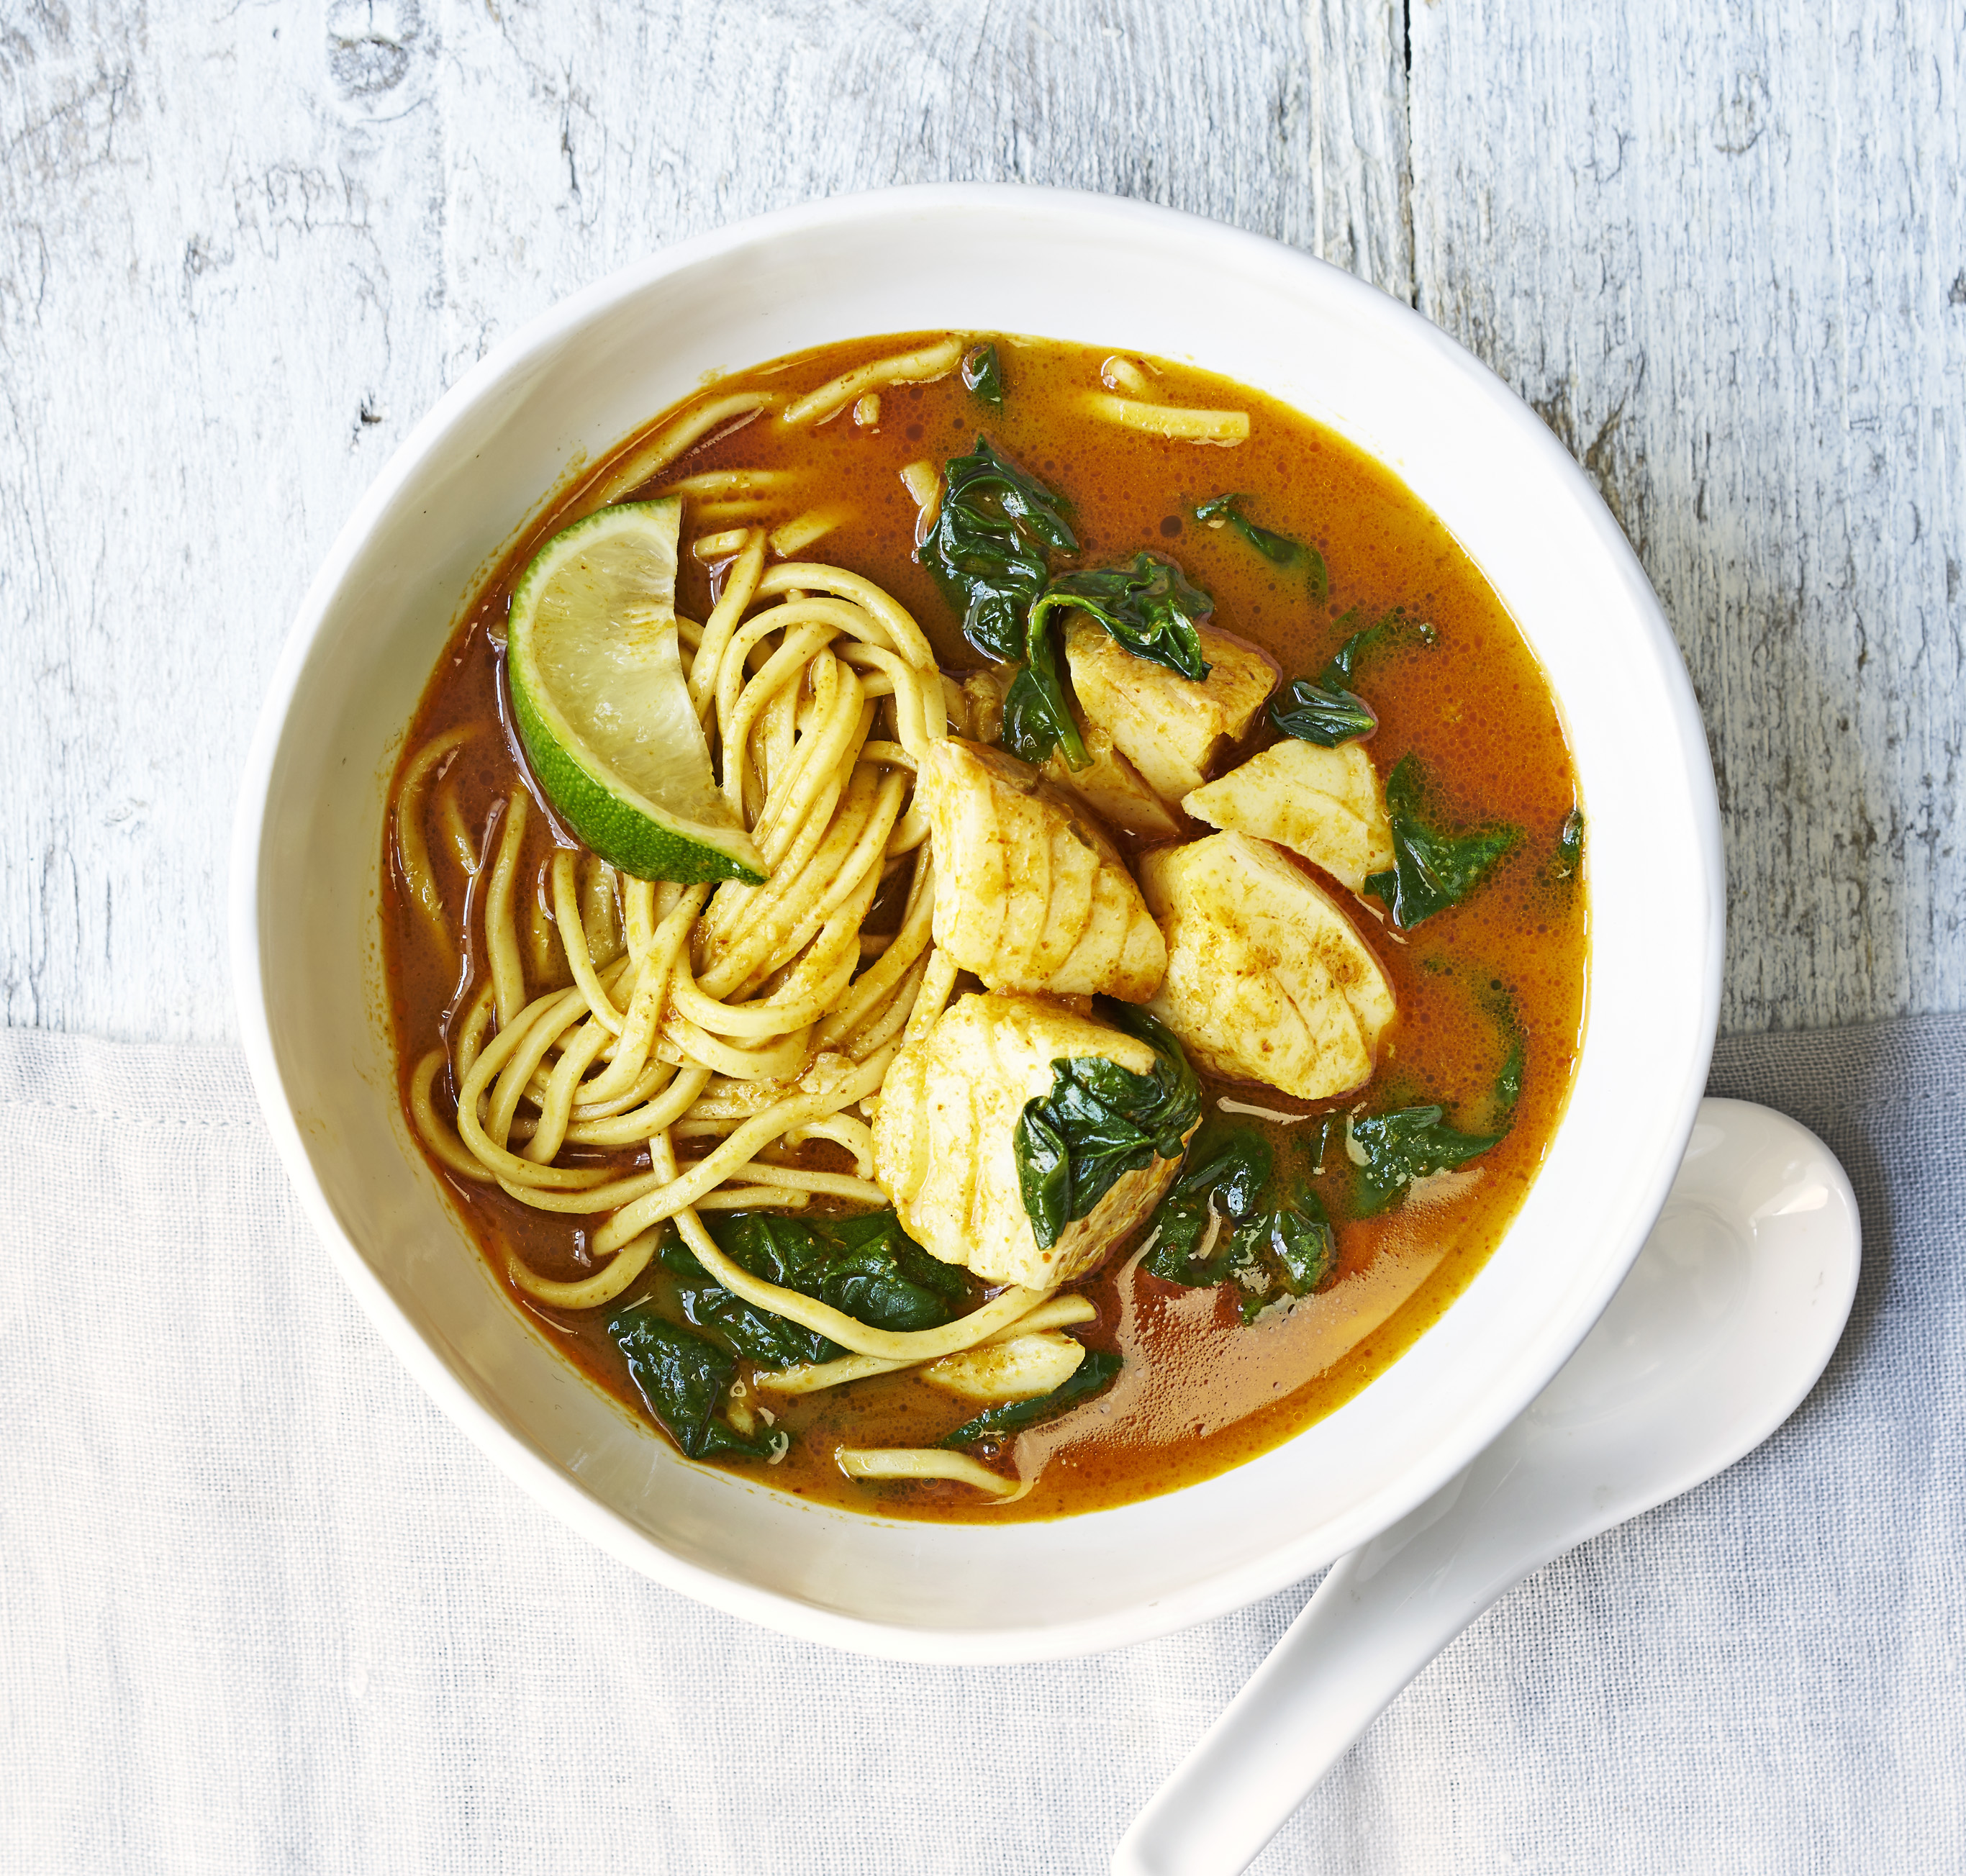 A warming bowl of Thai style coconut fish egg noodles with cod, spinach and limes